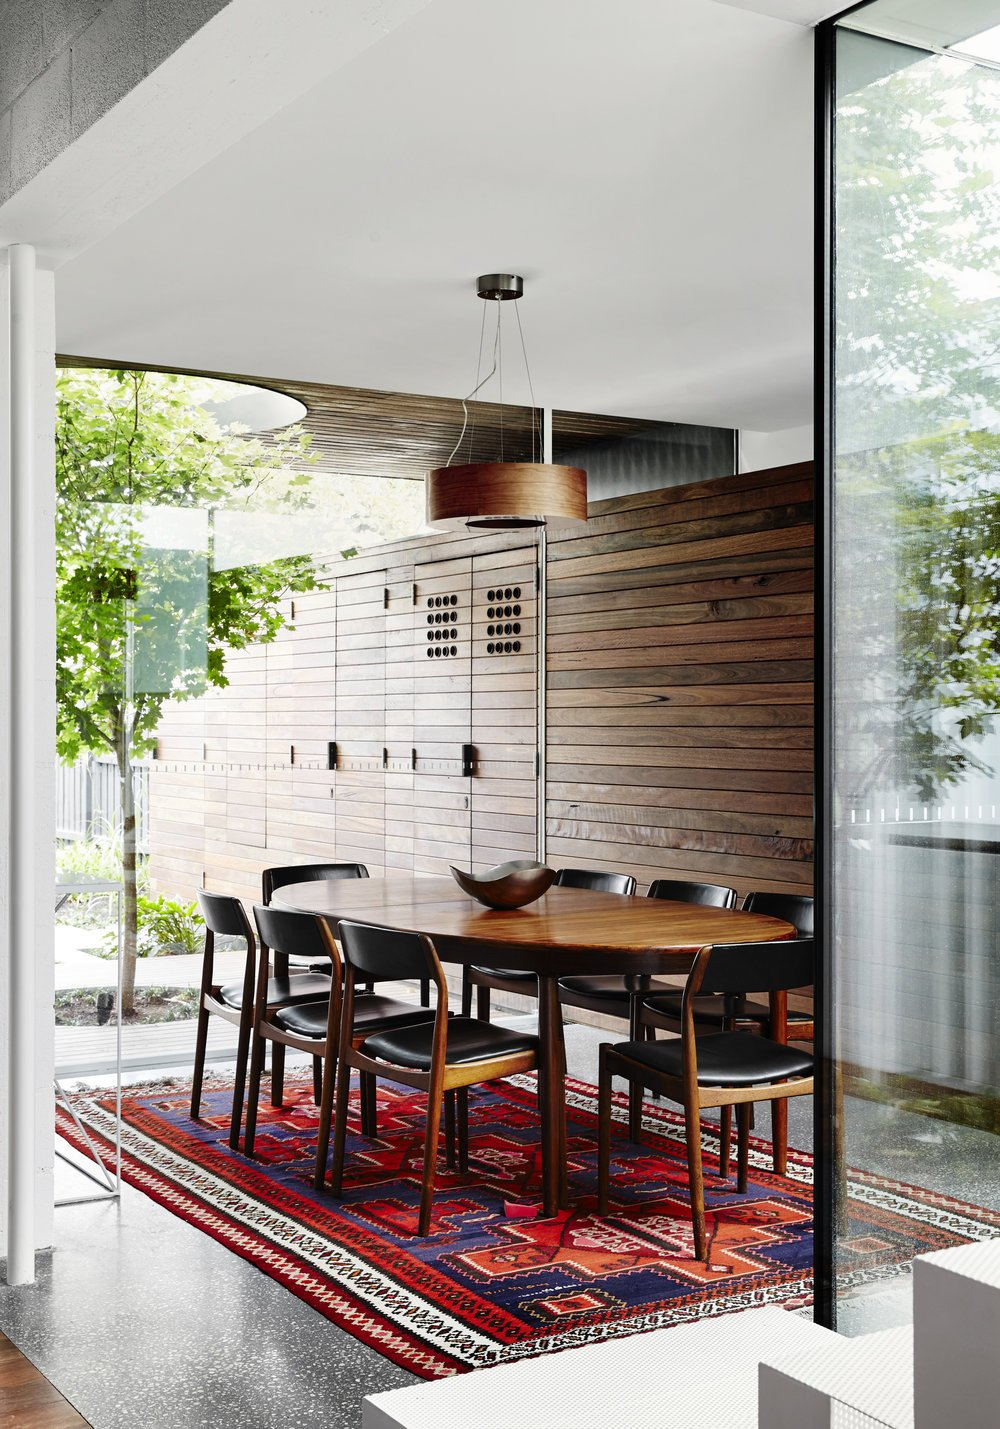 modernist australian house - maynard archtects - dining room